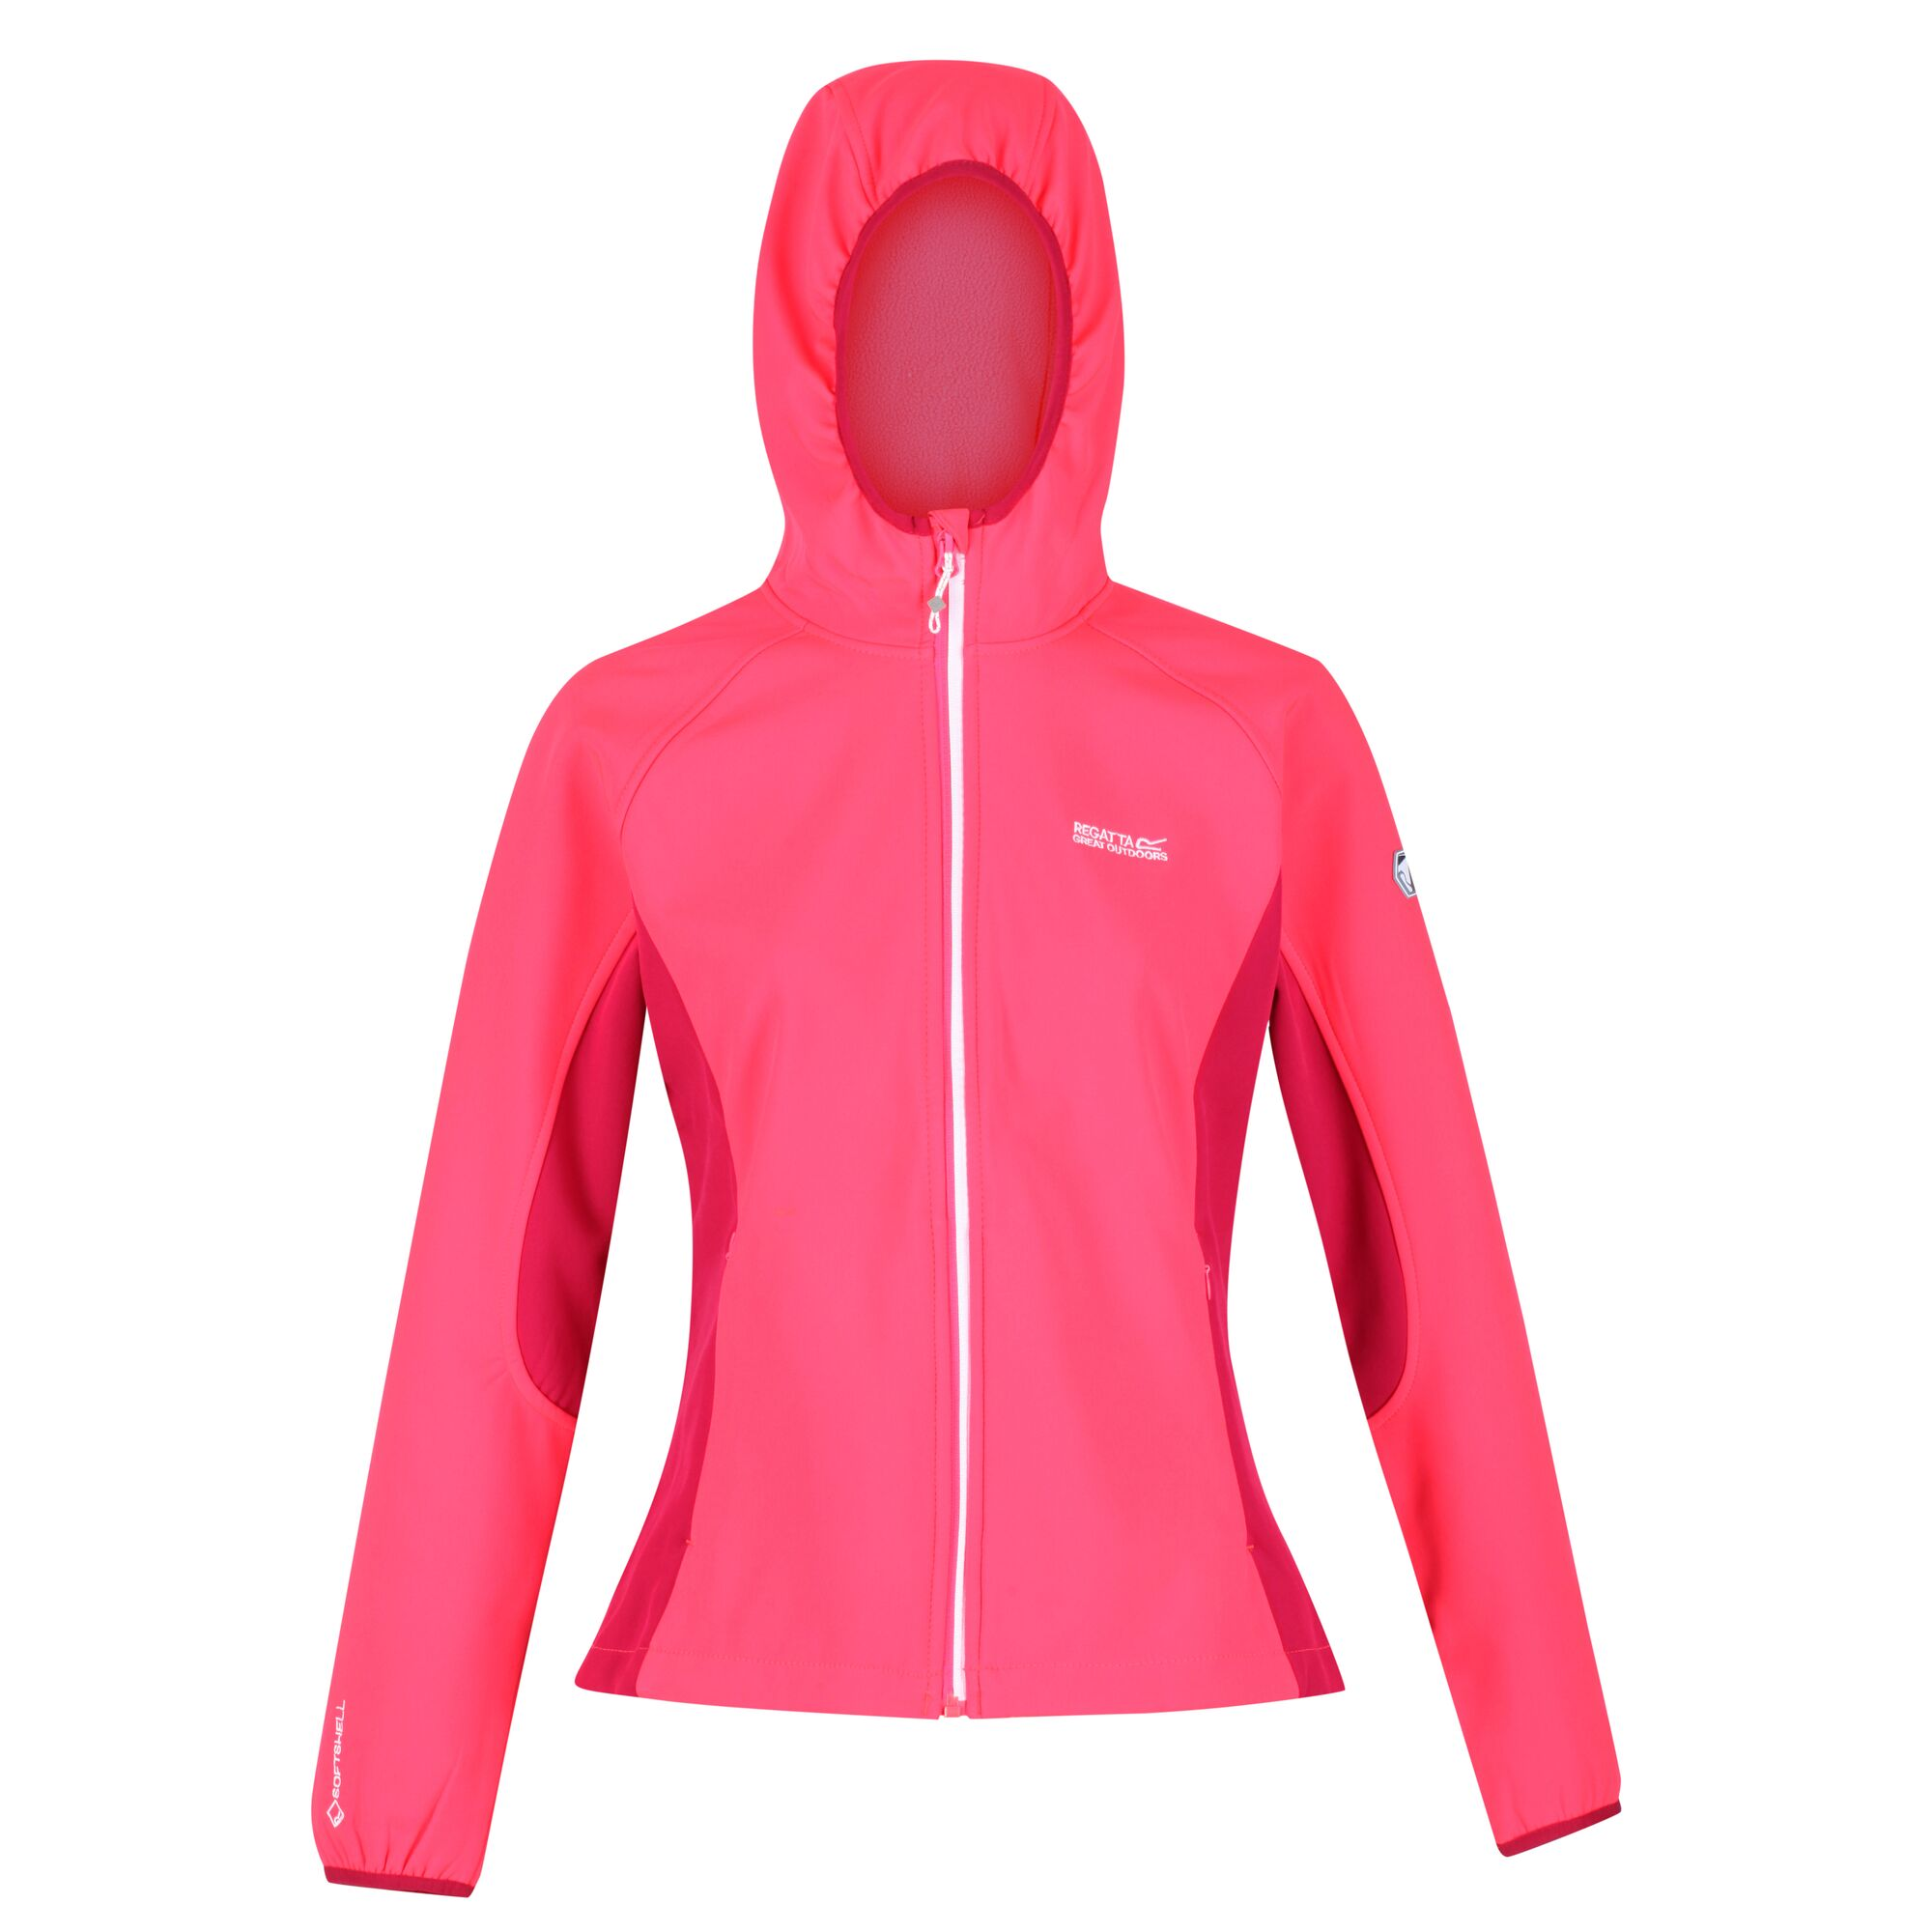 Regatta-Womens-Ladies-Arec-II-Softshell-Jacket-RG3315